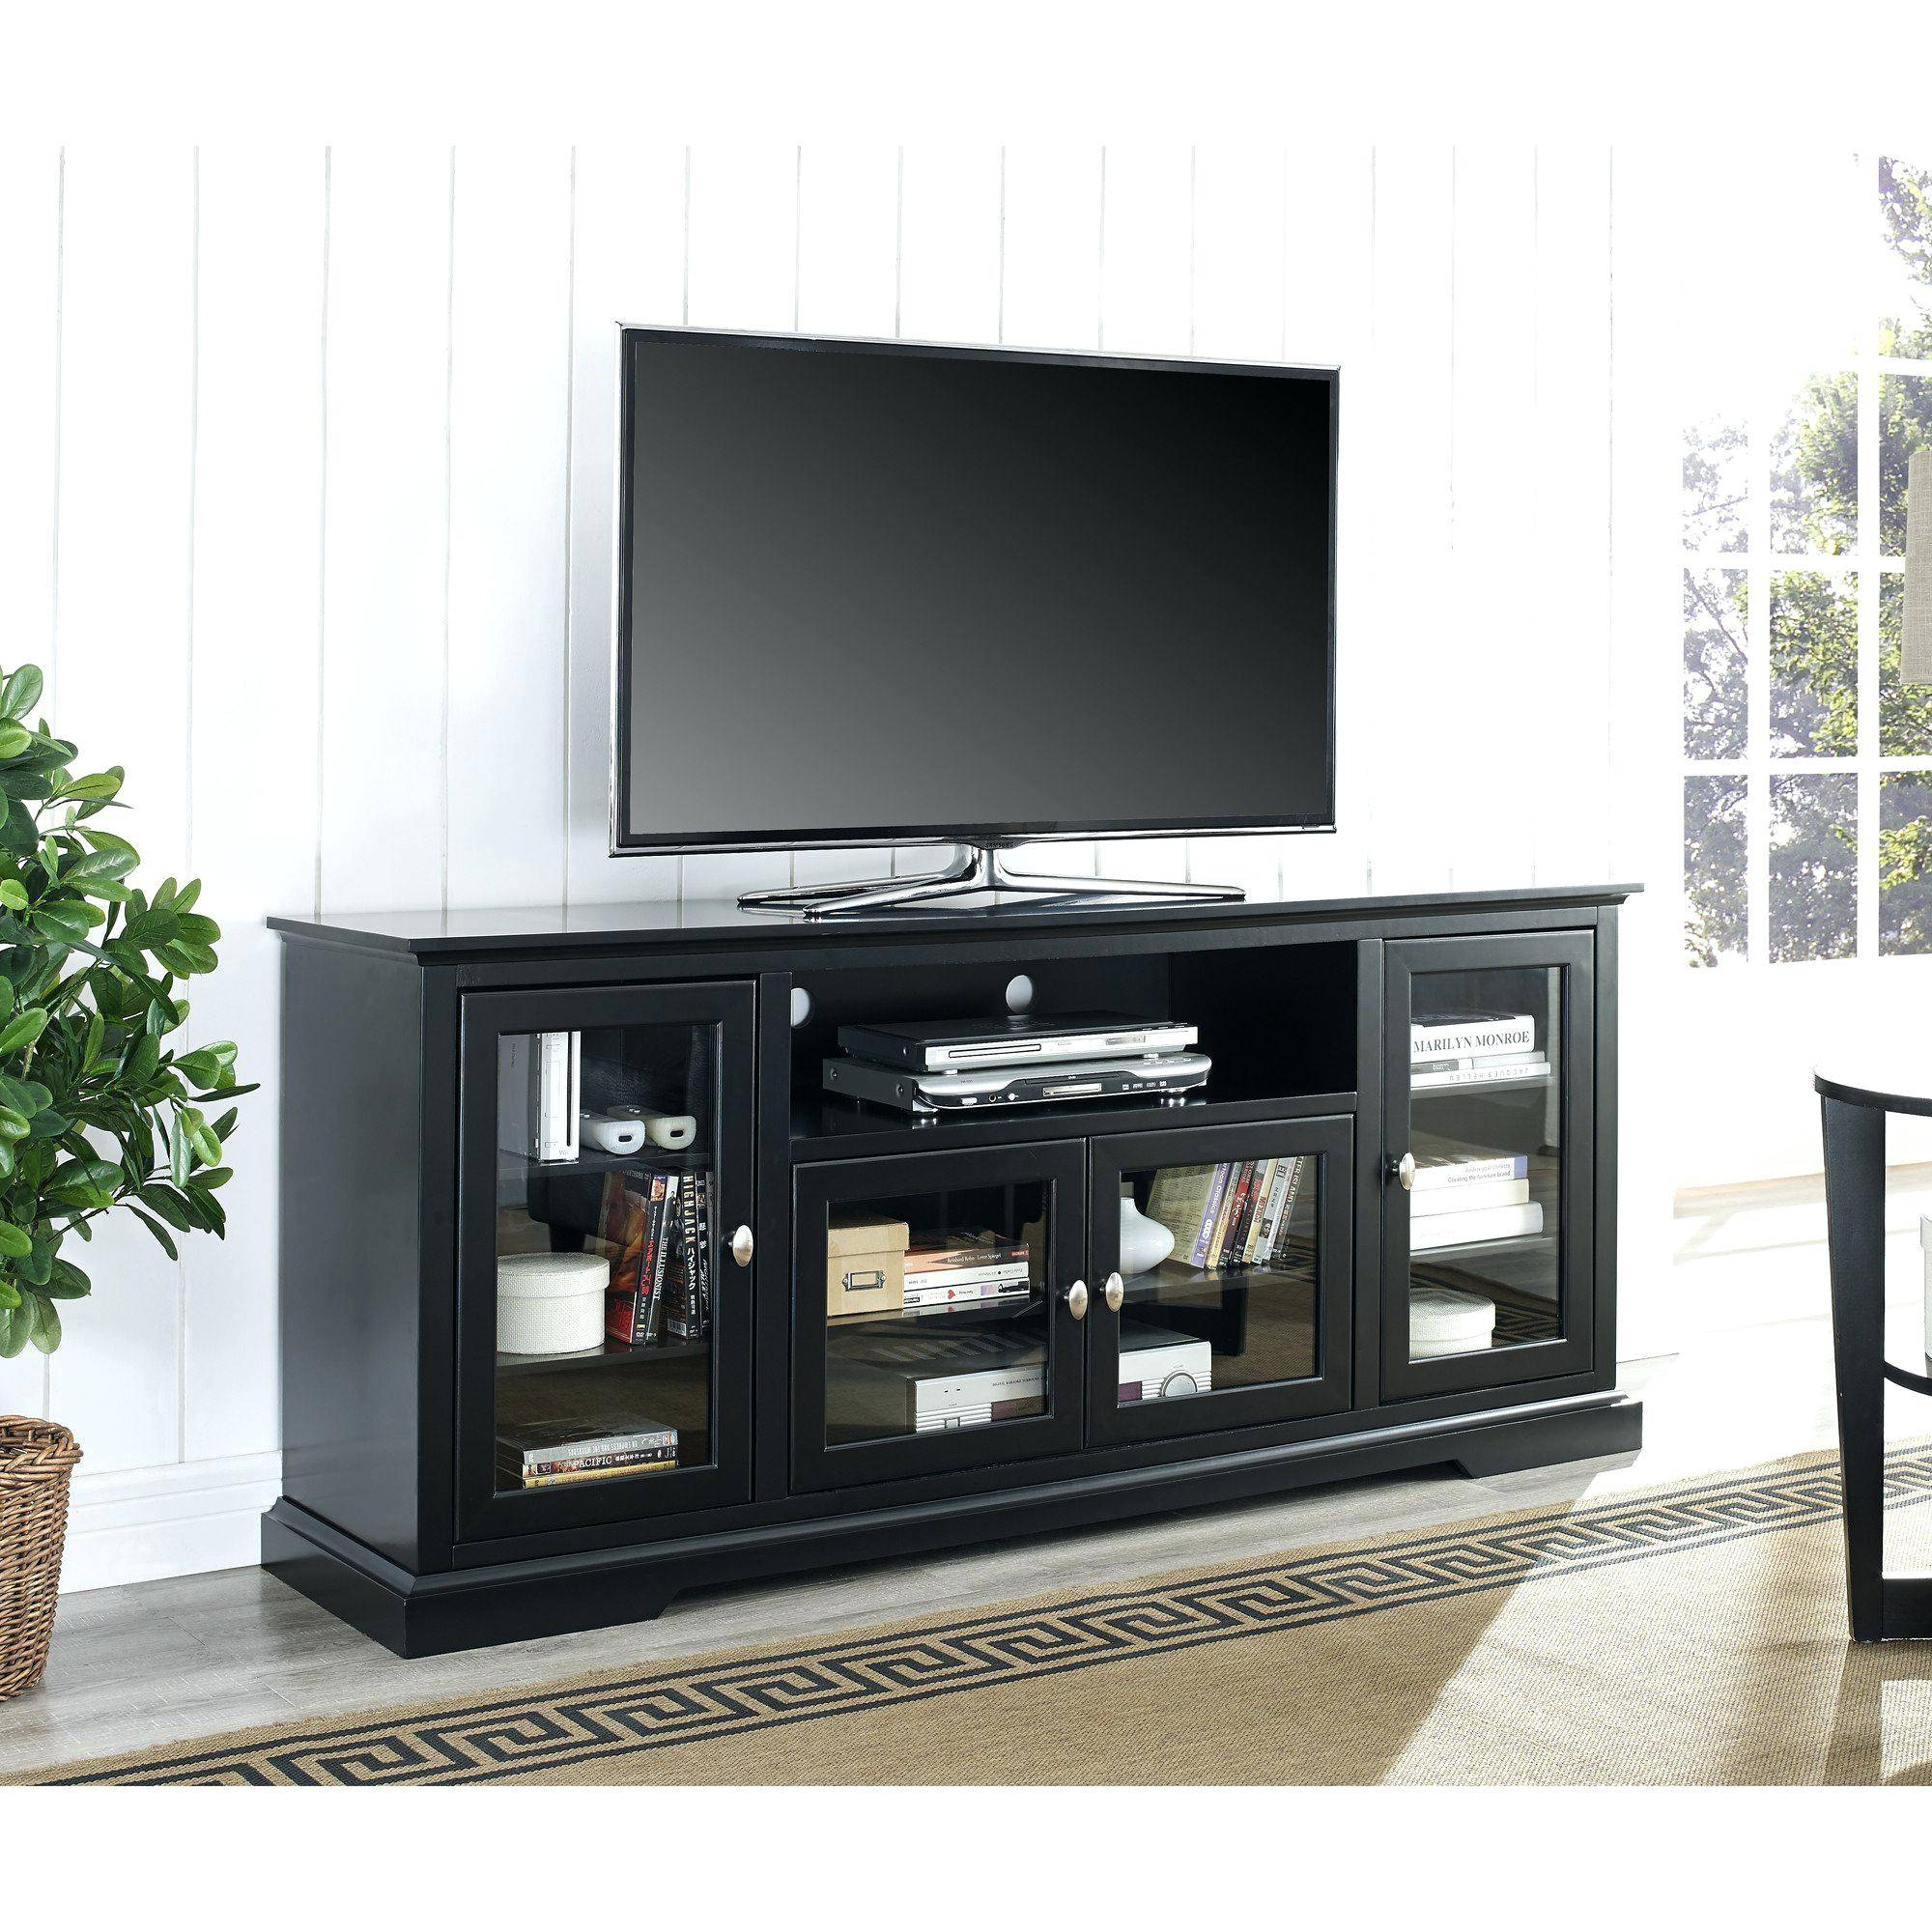 Articles With Tall Black Gloss Tv Cabinet Tag: Charming Tall Black for Tall Black Tv Cabinets (Image 2 of 15)